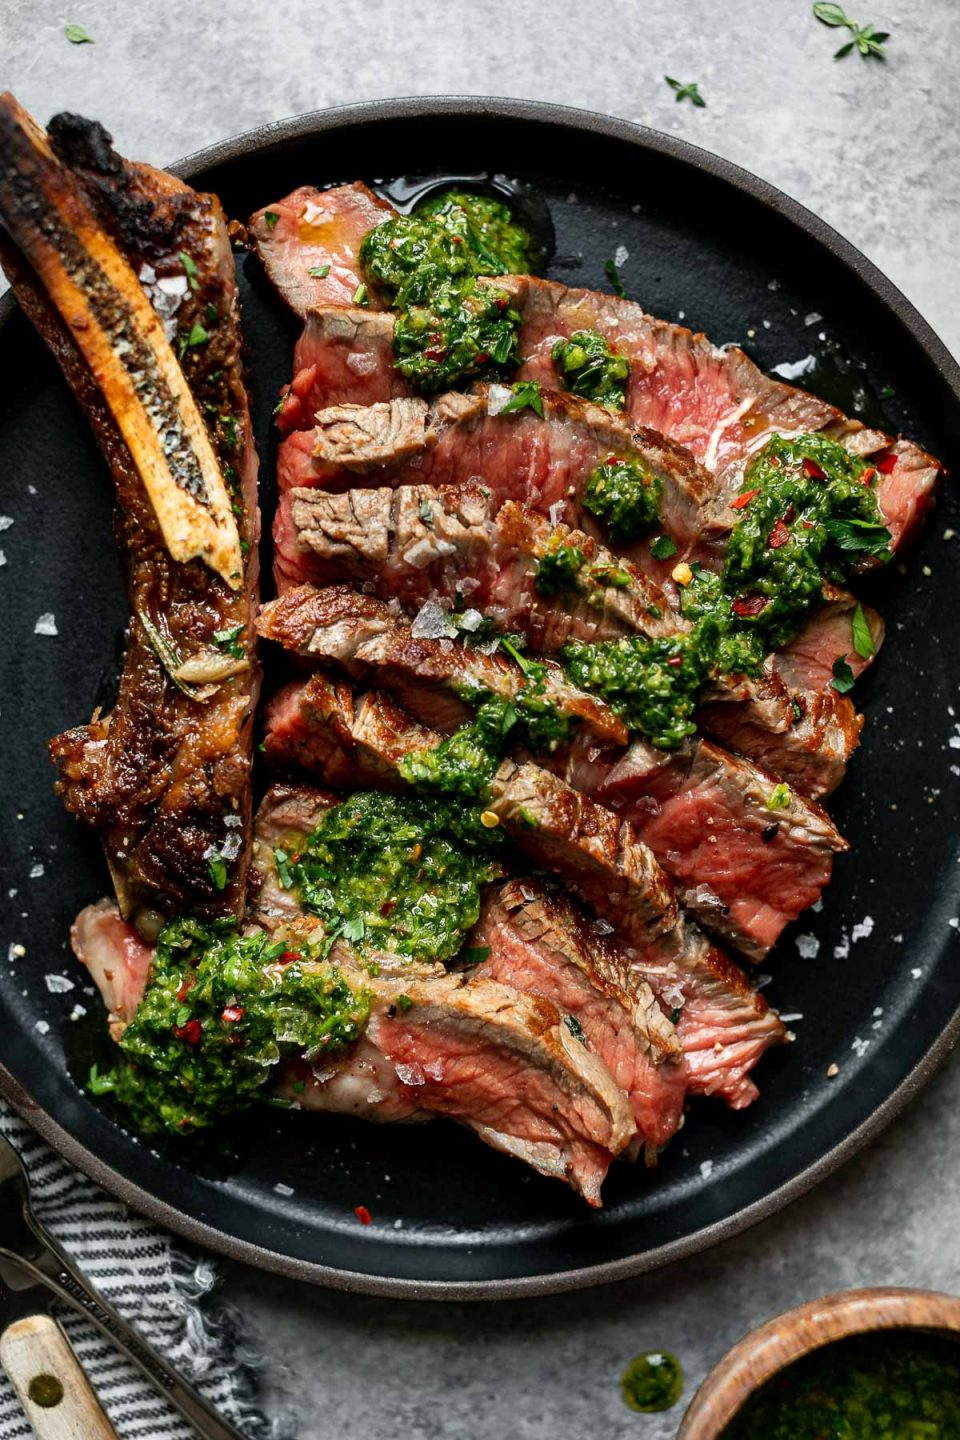 Cooked cast iron steak shown on a small black plate. The steak is sliced off the bone, showing a medium-rare interior, & topped with chimichurri. The plate is placed atop a light gray surface, next to a bowl of flaky salt, a striped linen napkin & a fork & steak knife.